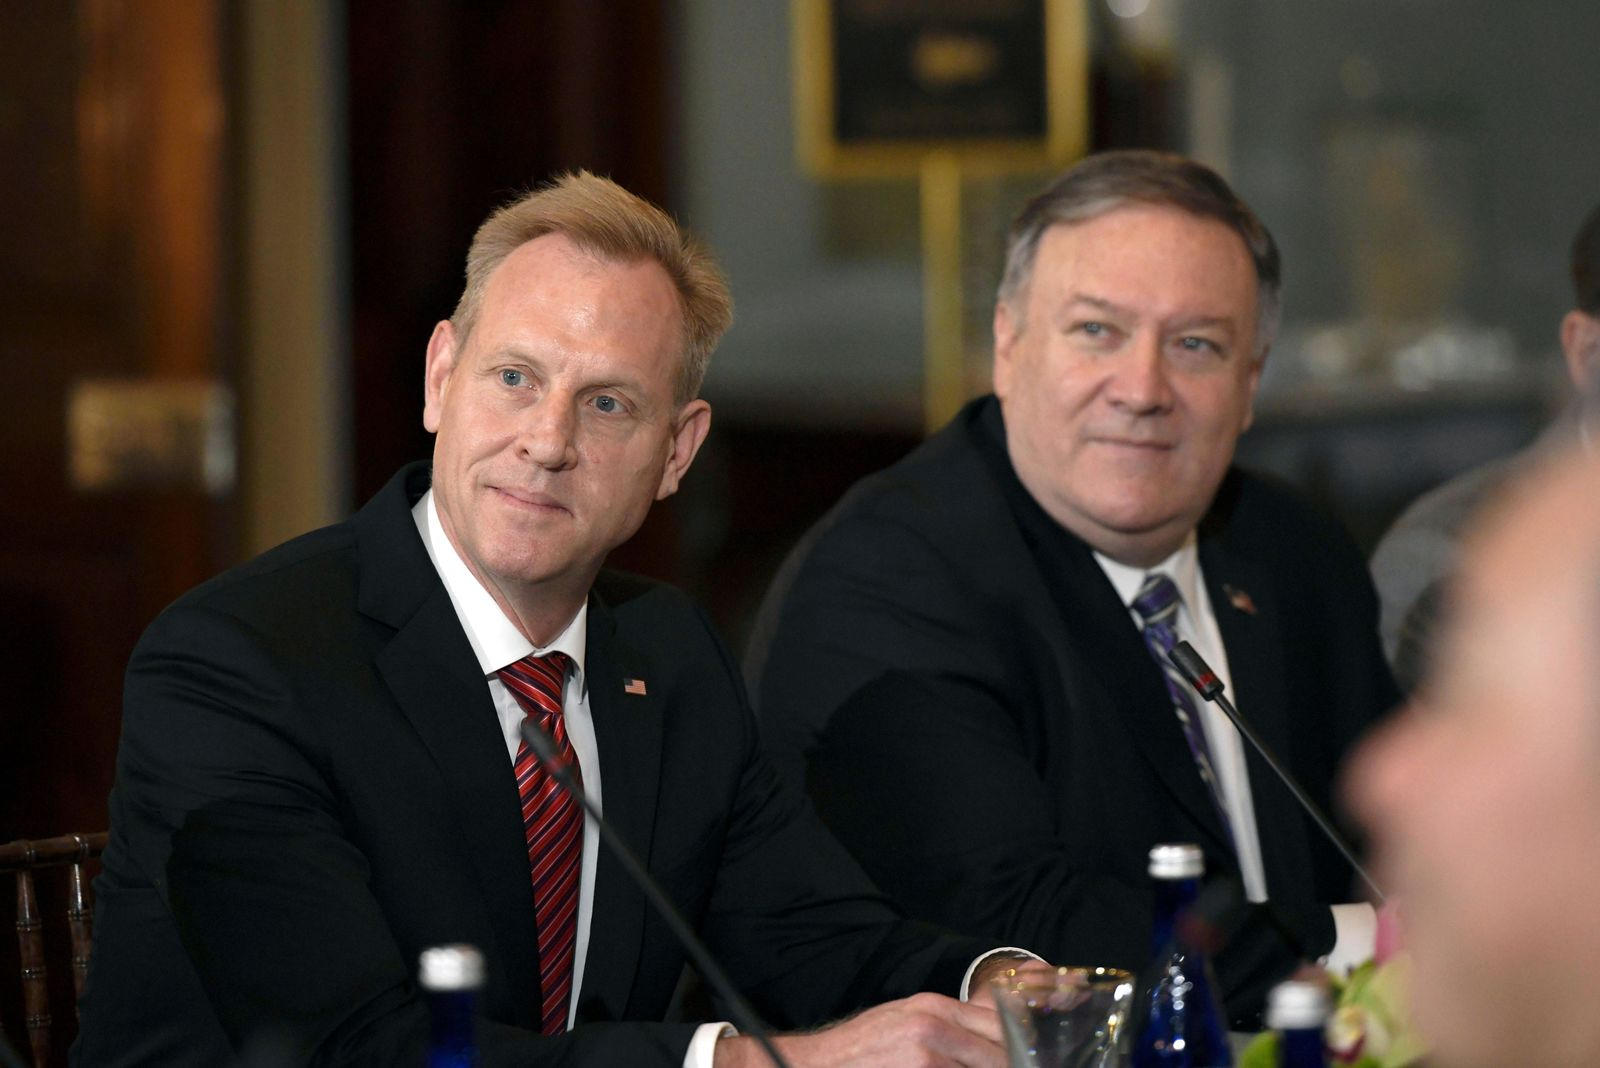 Secretary of State Mike Pompeo, right, and acting Secretary of Defense Patrick Shanahan, left, meet with Japanese Foreign Minister Taro Kono and Defense Minister Takeshi Iwaya on Friday, April 19, 2019, at the Department of State in Washington. (AP Photo/Sait Serkan Gurbuz)